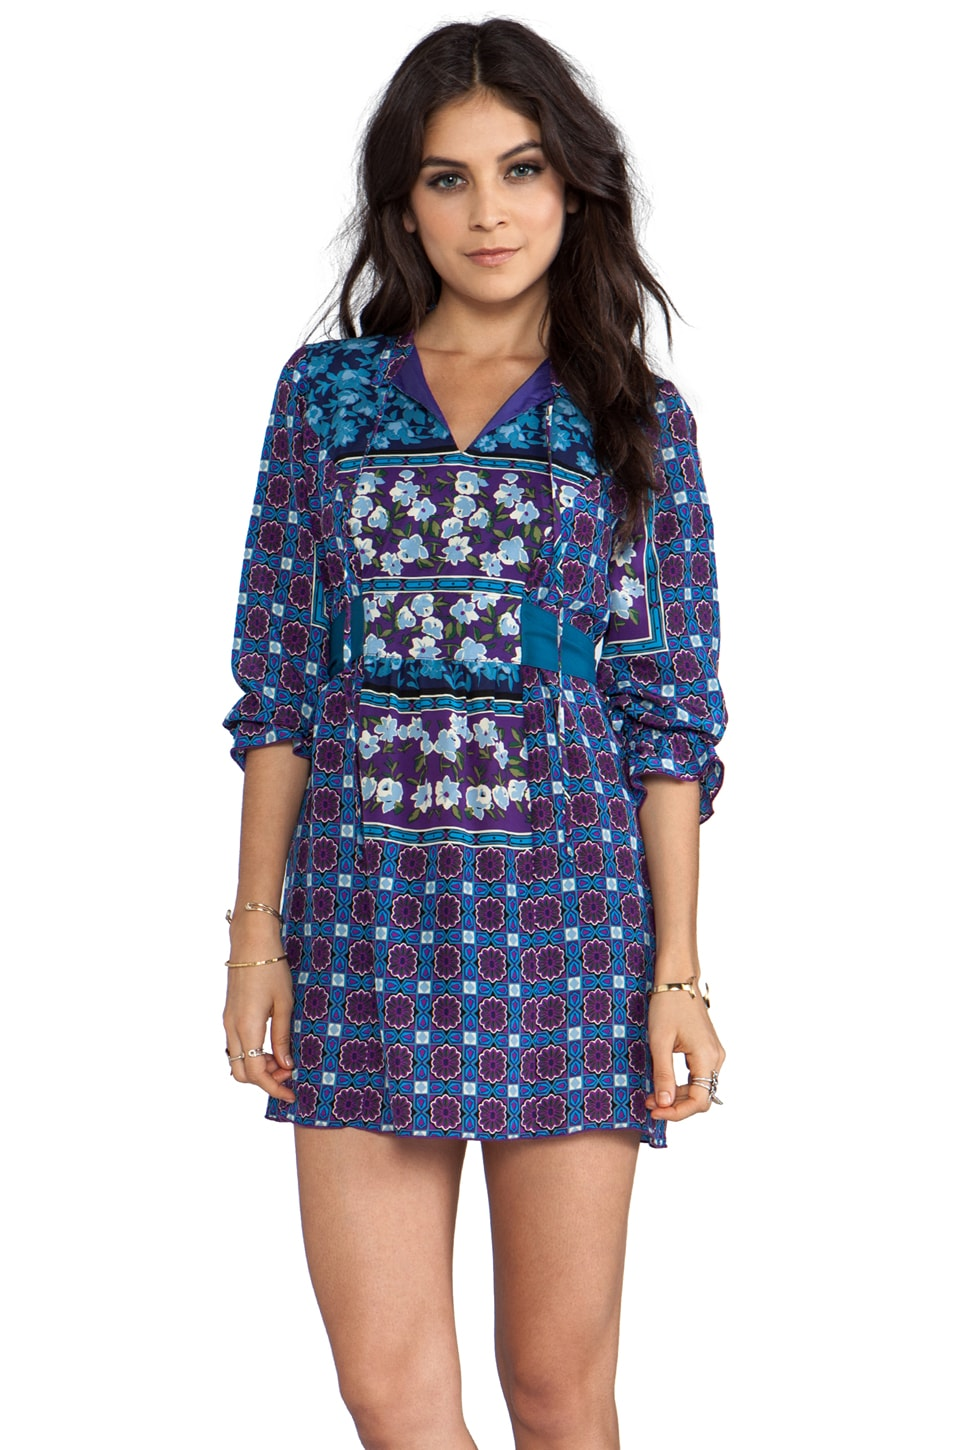 Anna Sui Scherazade Panel Print Crepe De Chine Dress in Slate Blue Multi